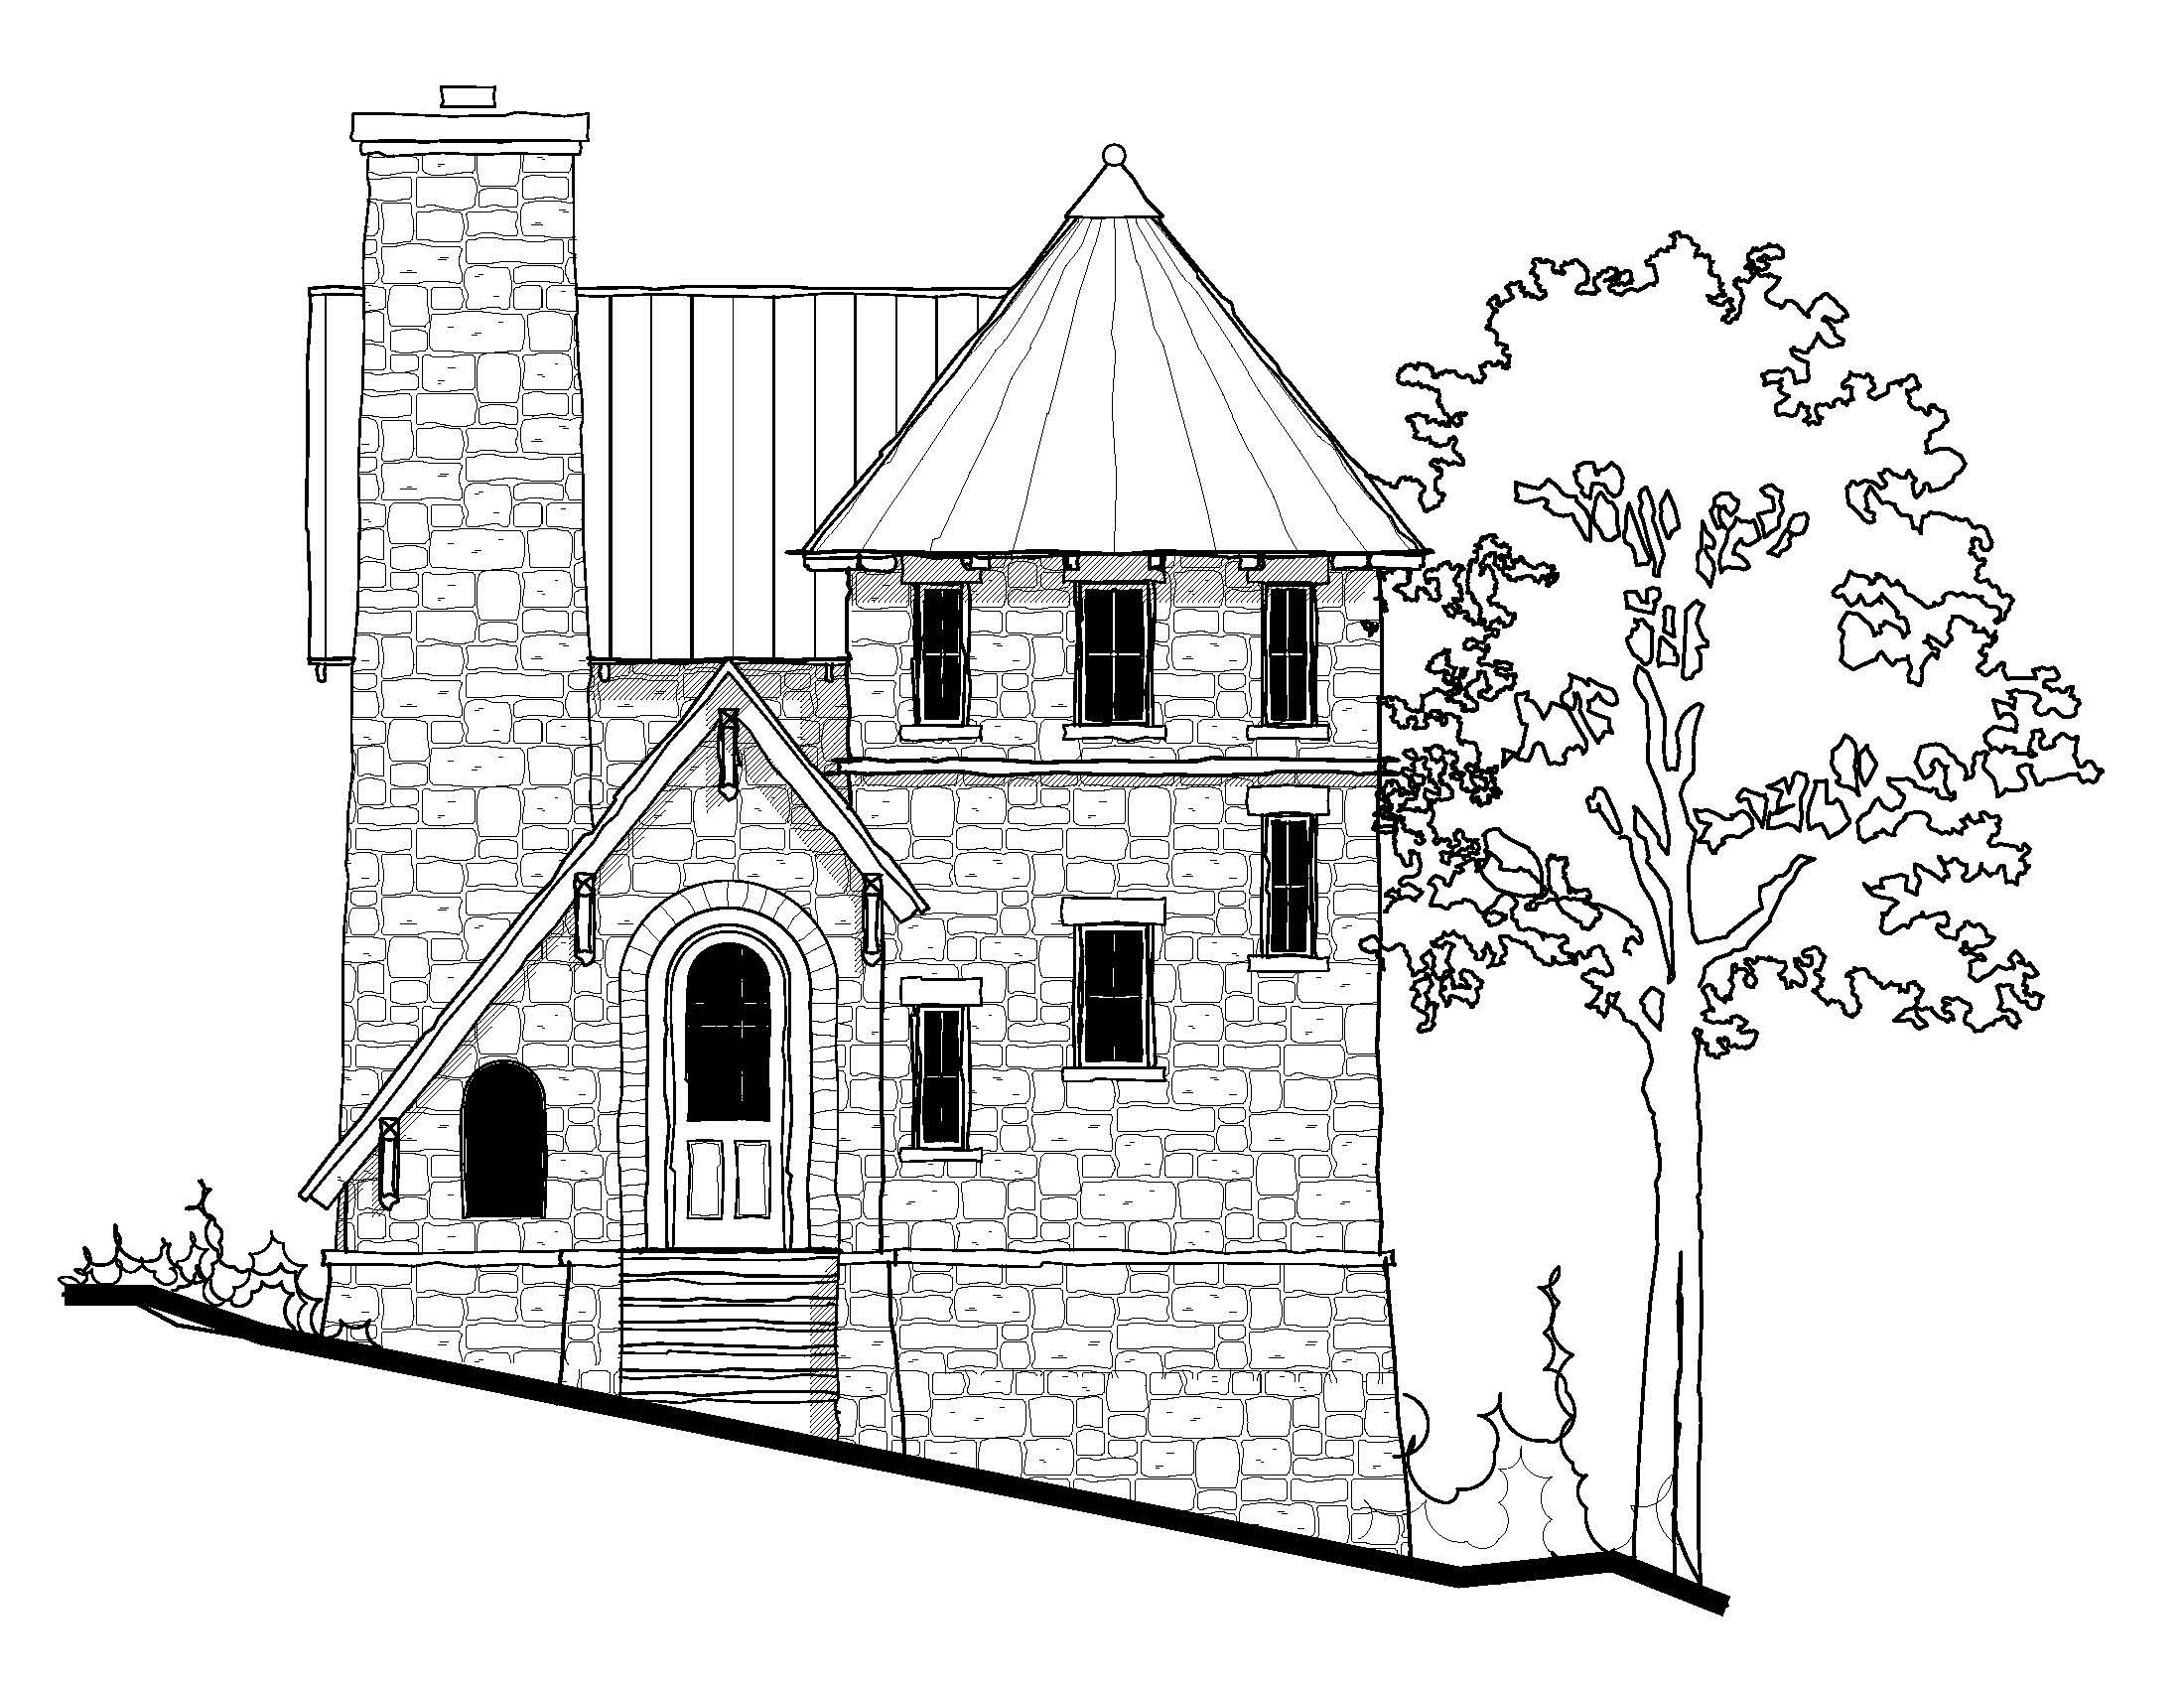 Tiny Castle 698 Sq Ft Castle House Plans Small Castles Castle House